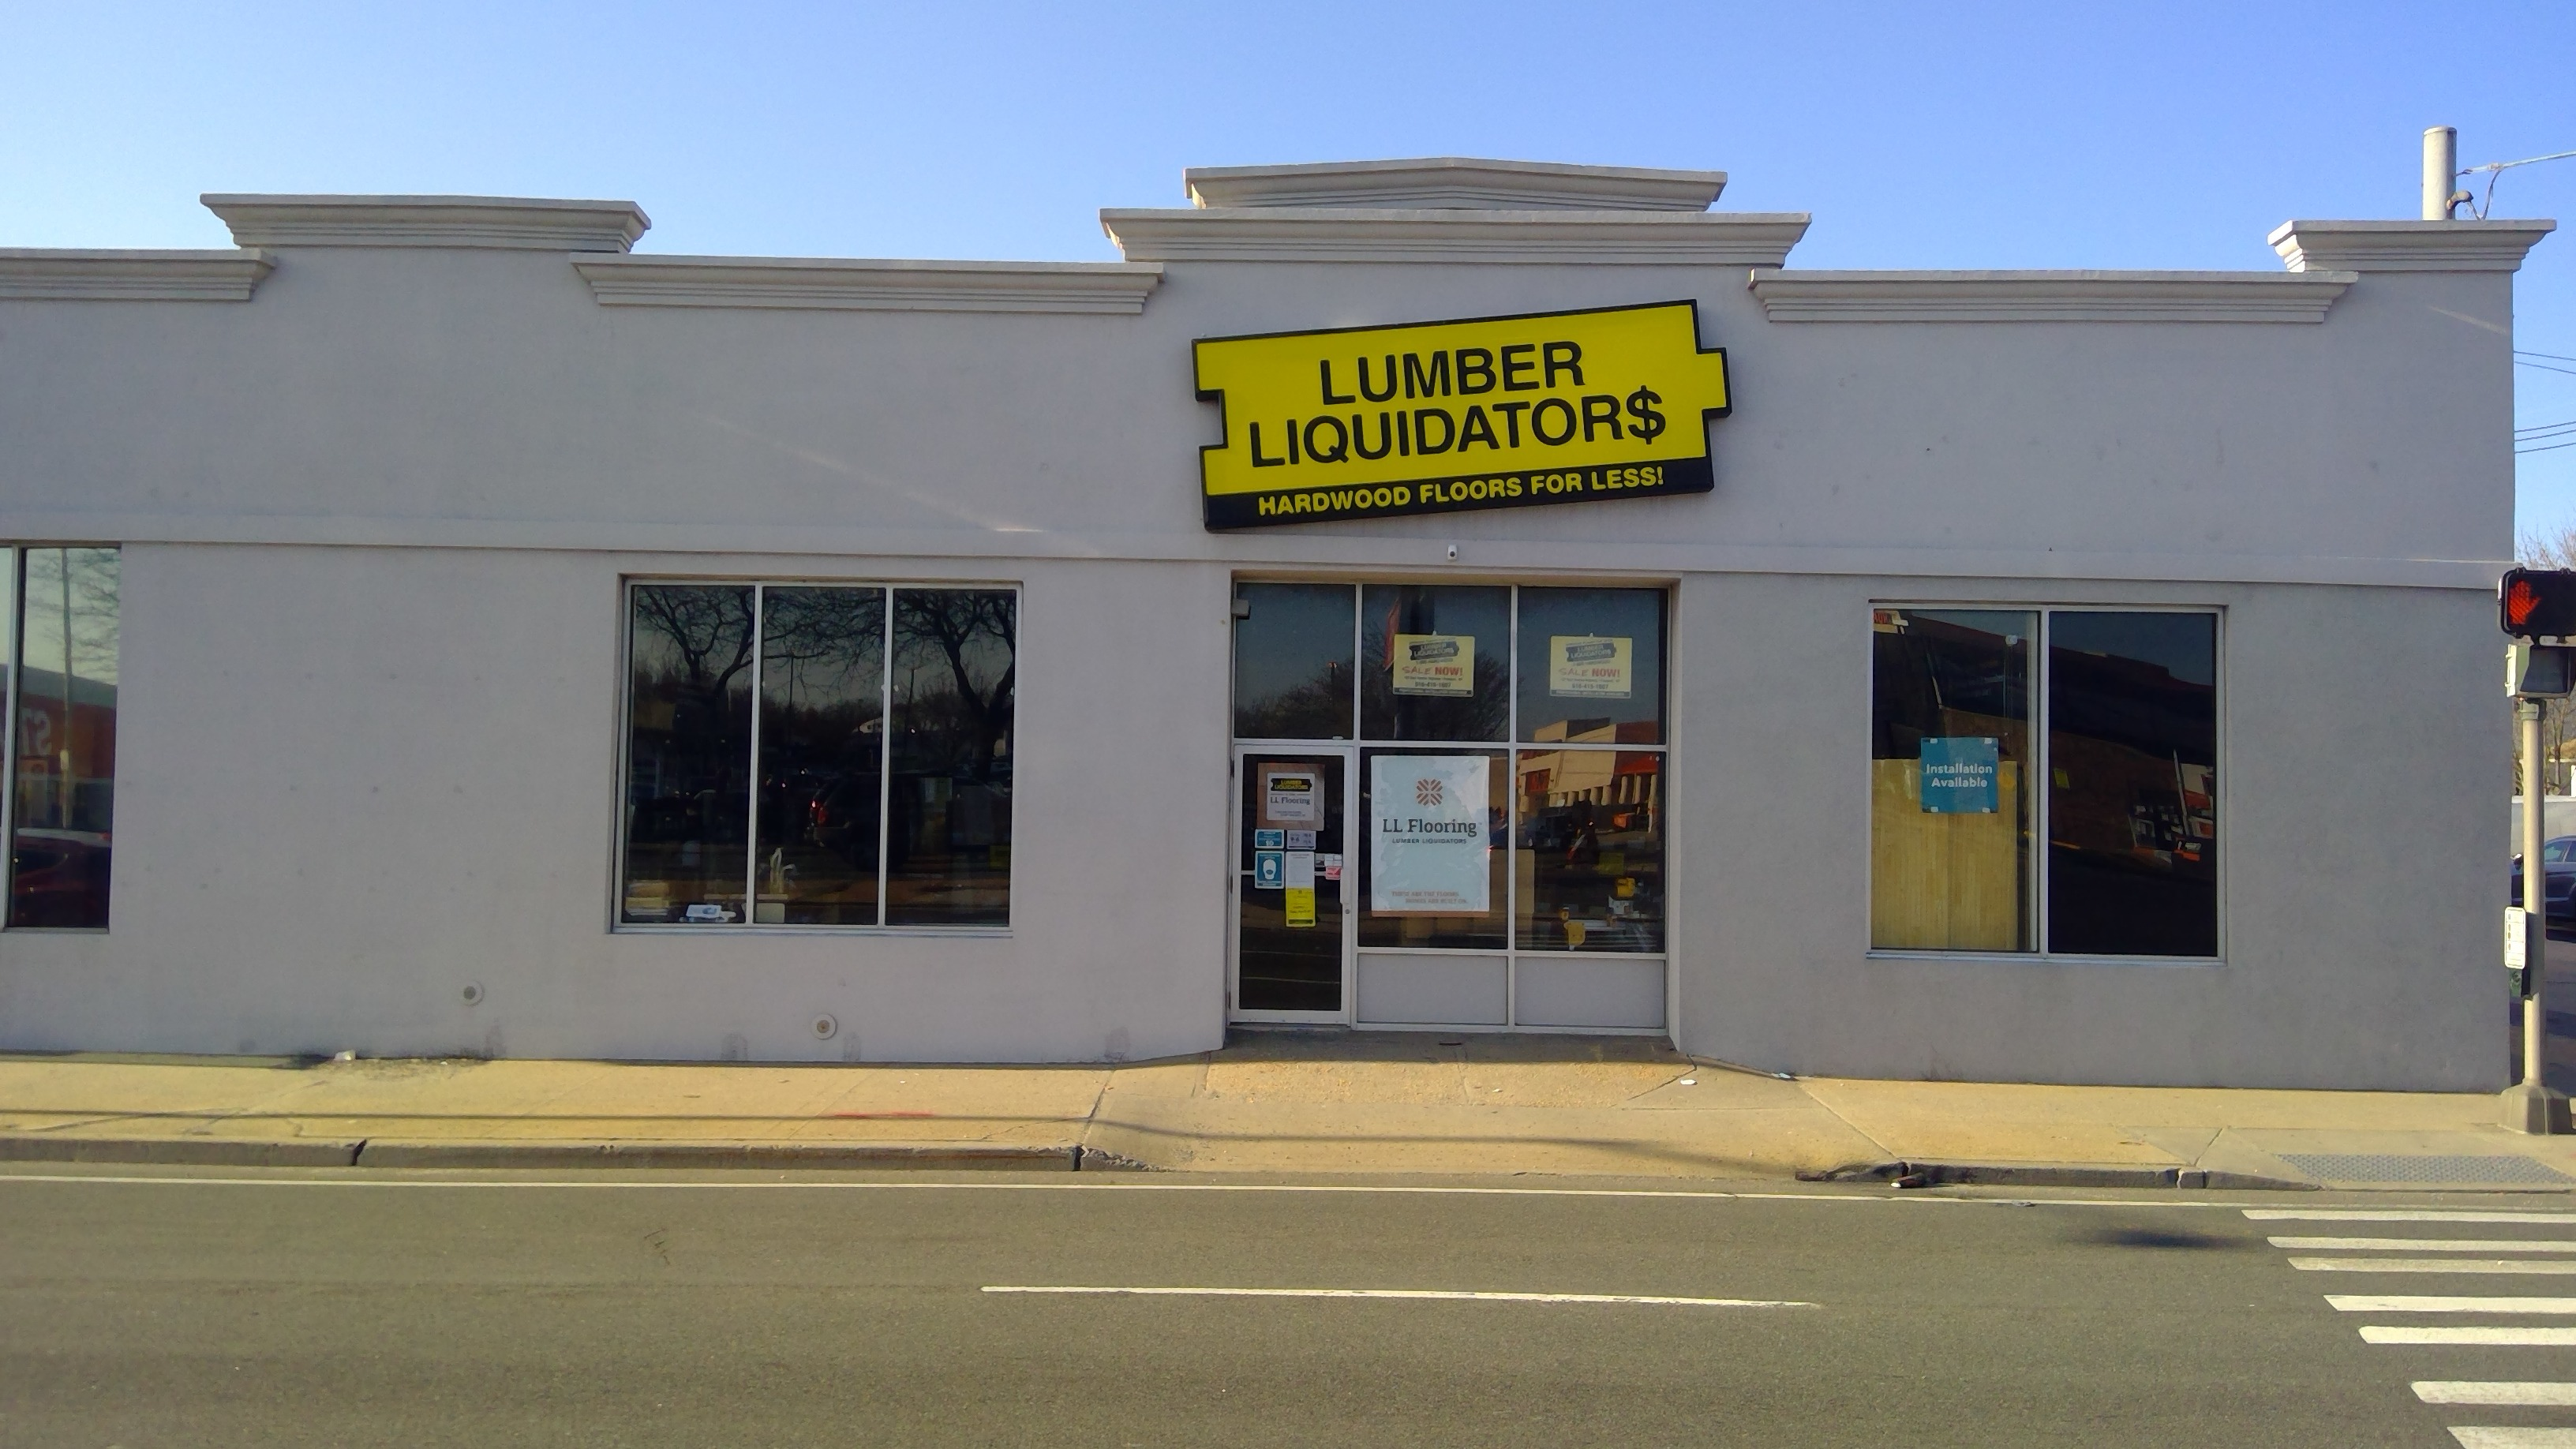 LL Flooring #1294 Freeport | 137 East Sunrise Highway | Storefront